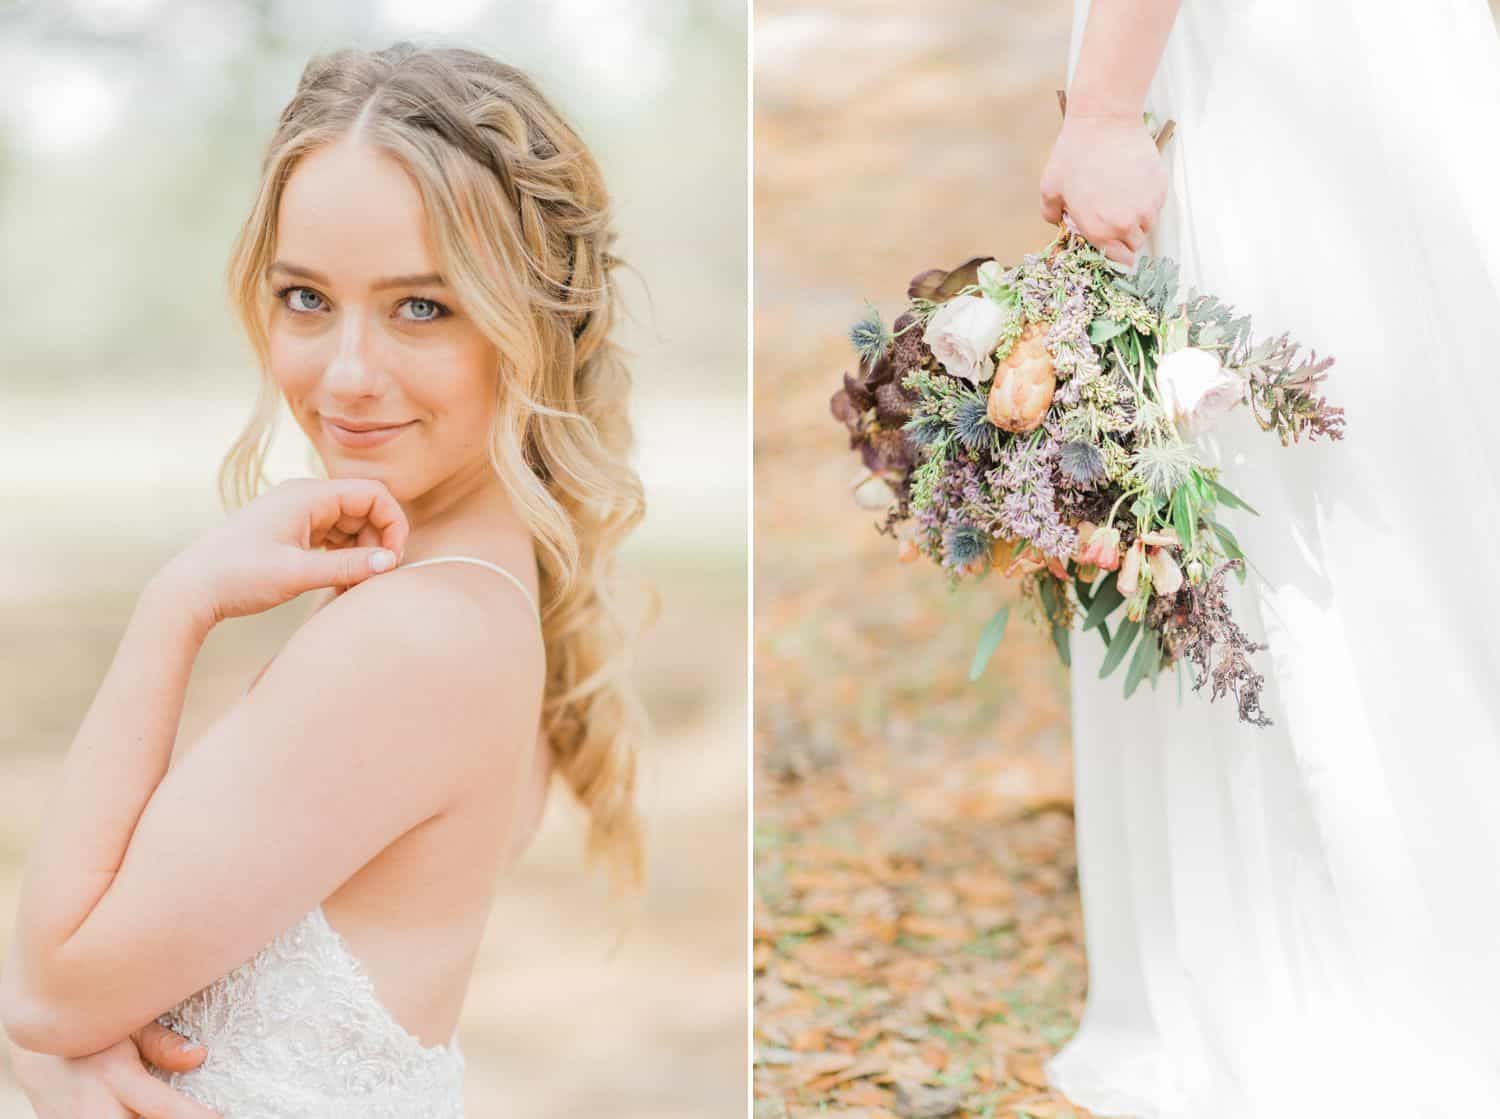 Blonde Bride with Braid and Wildflowers: Get Photography Clients with Styled Shoots